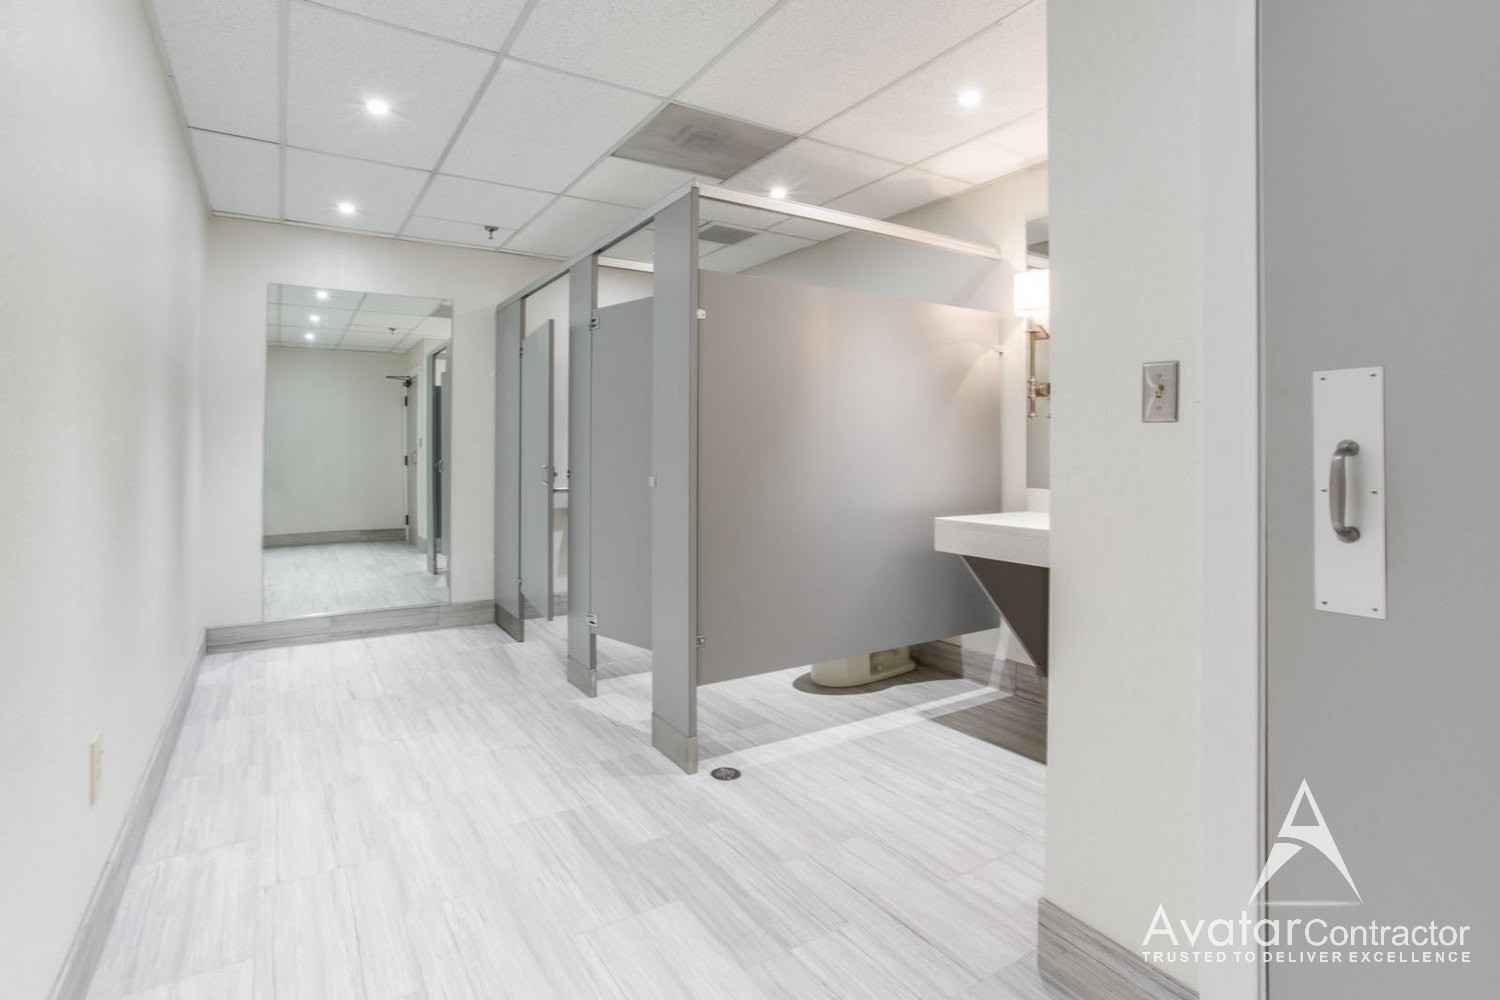 Commercial Bathroom Remodeling Atlanta